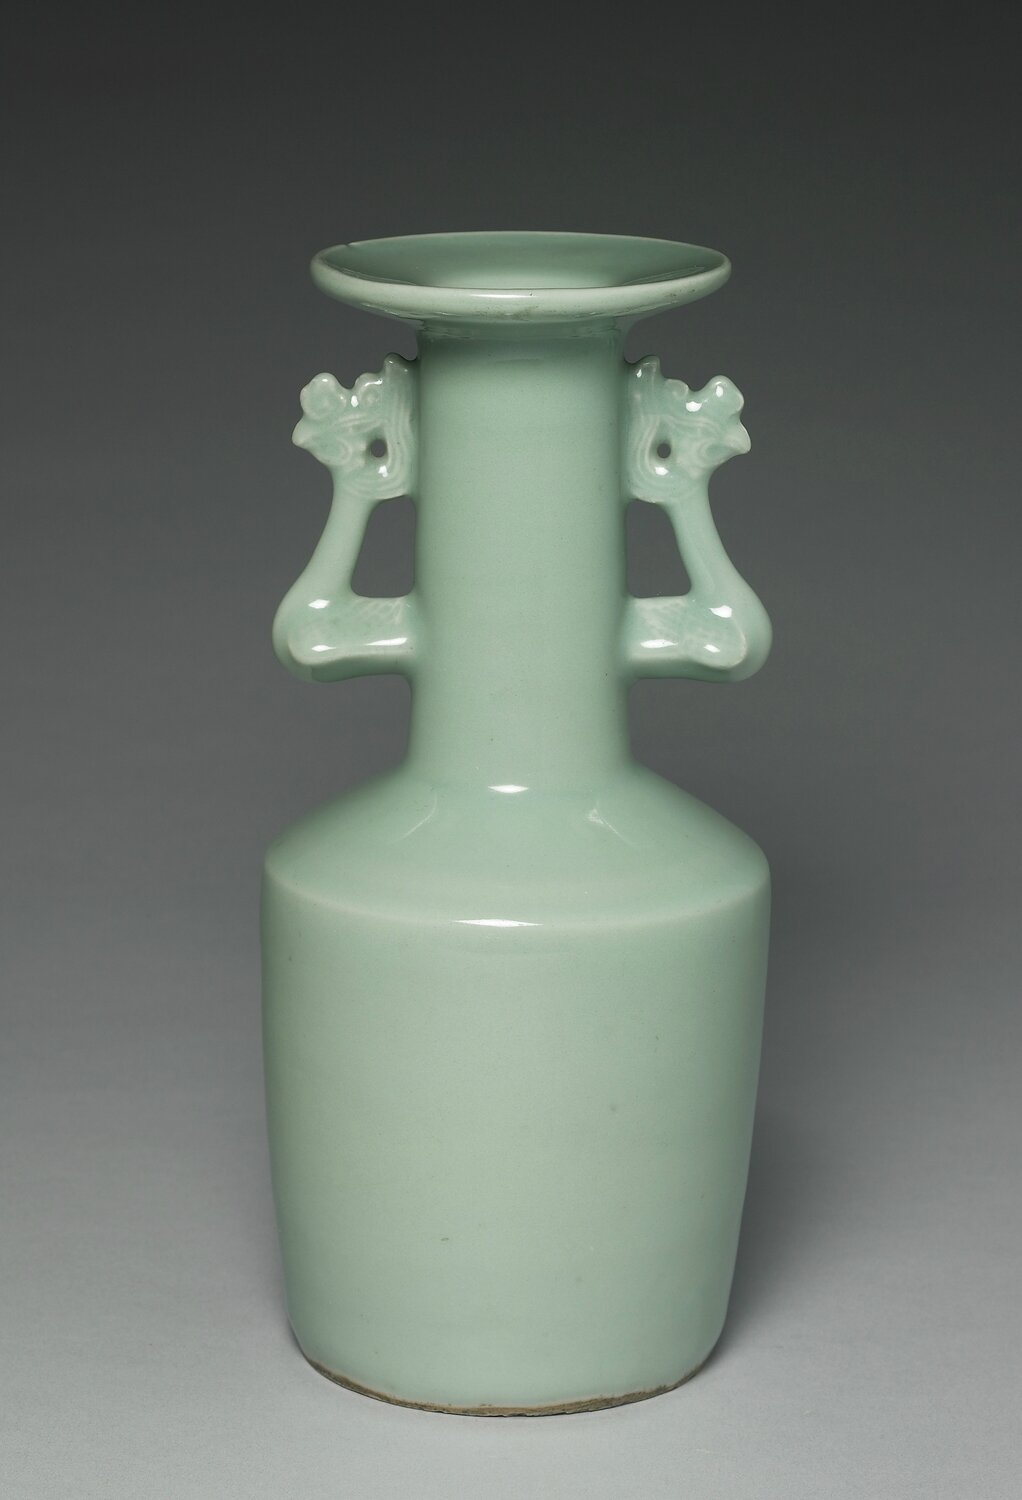 Celadon-glazed vase with phoenix-shaped handles, Longquan ware, Southern Song dynasty, 1127-1279